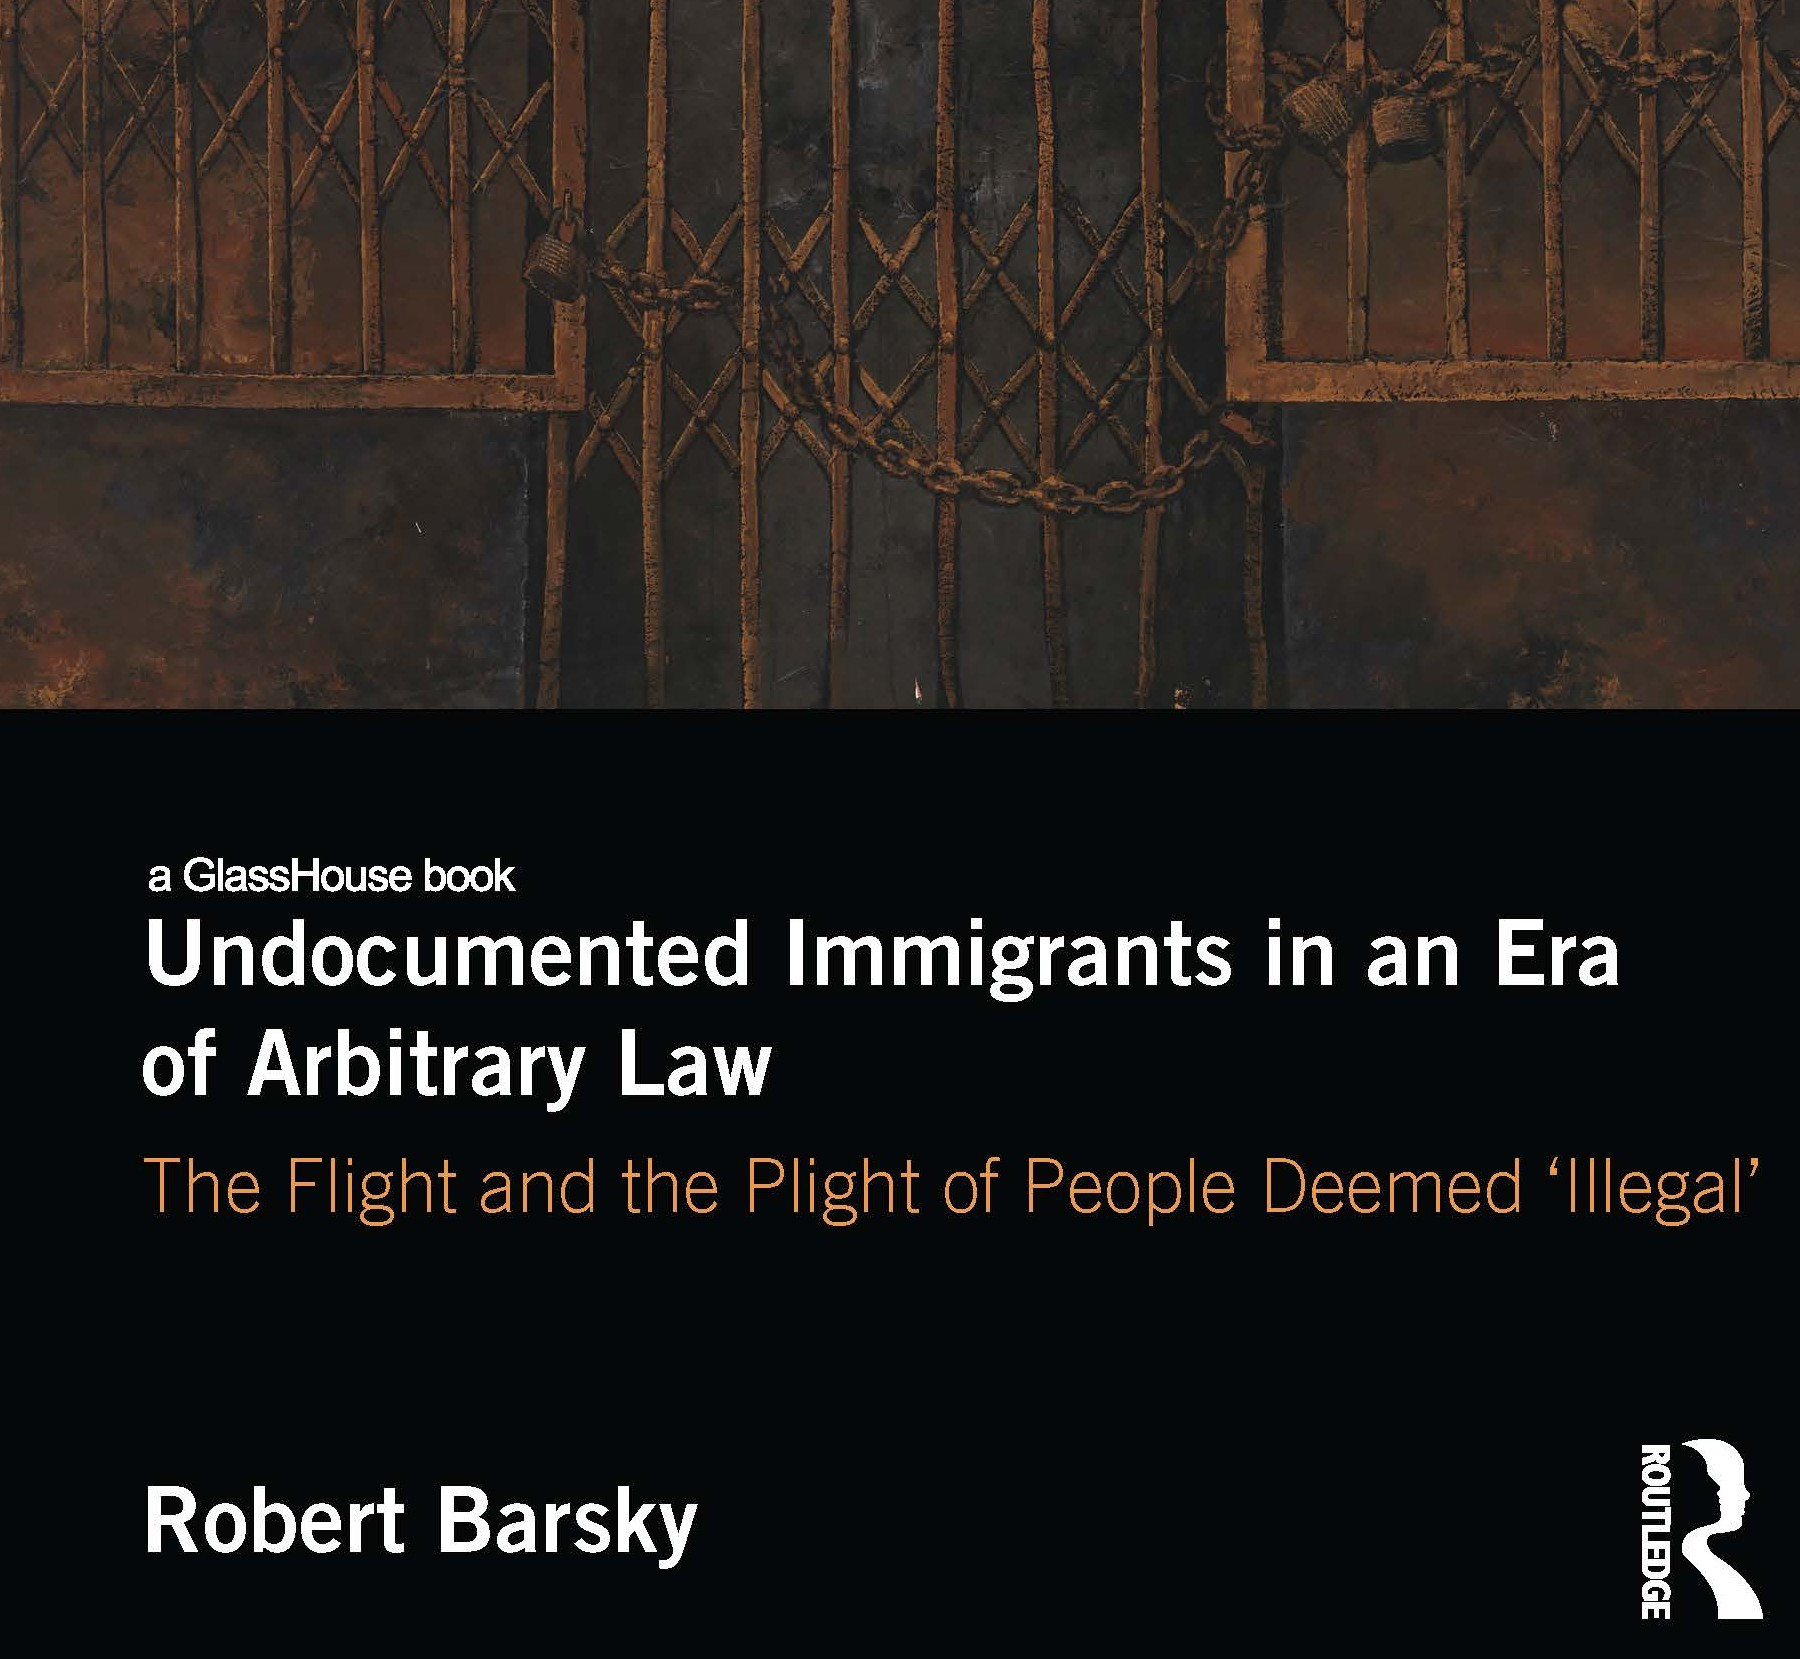 Congratulations to Robert Barsky on his new book: Undocumented Immigrants in an Era of Arbitrary Law: The Flight and the Plight of People Deemed 'Illegal'